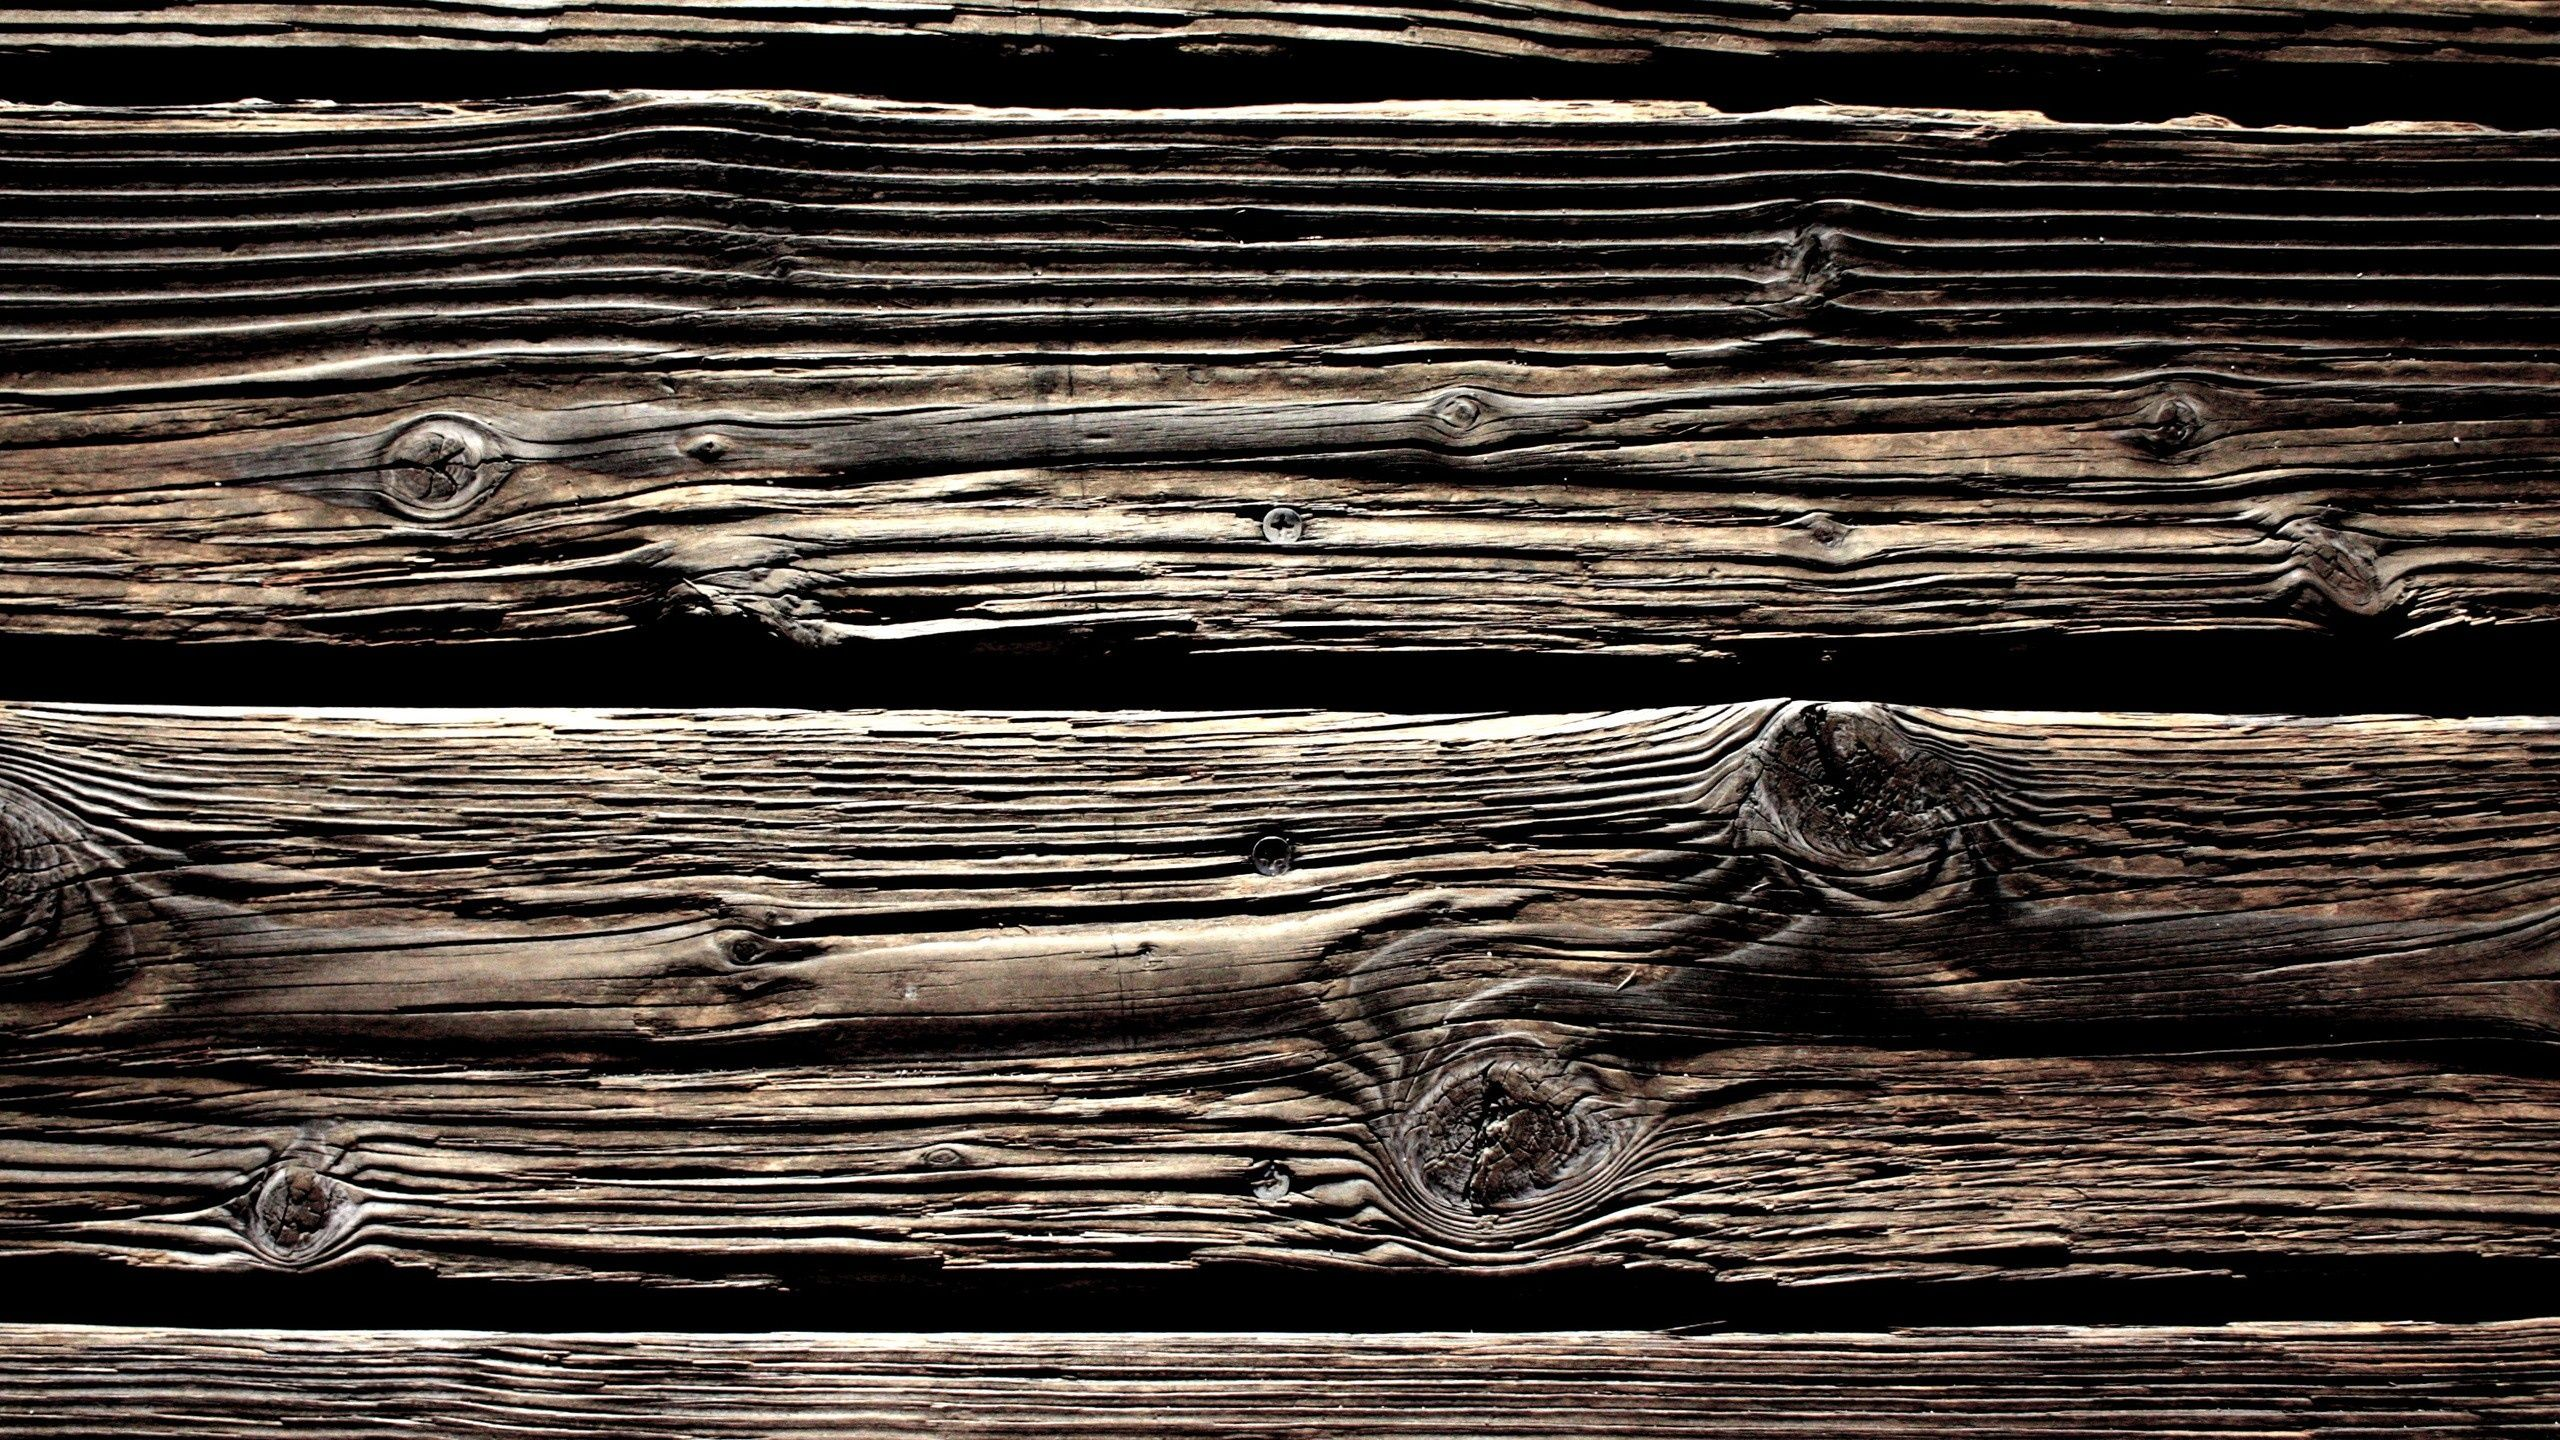 Another Old Wood Backgrounds Wooden Texture Reetextures Rustic Wood Wallpaper Rustic Wood Background Wood Texture Background